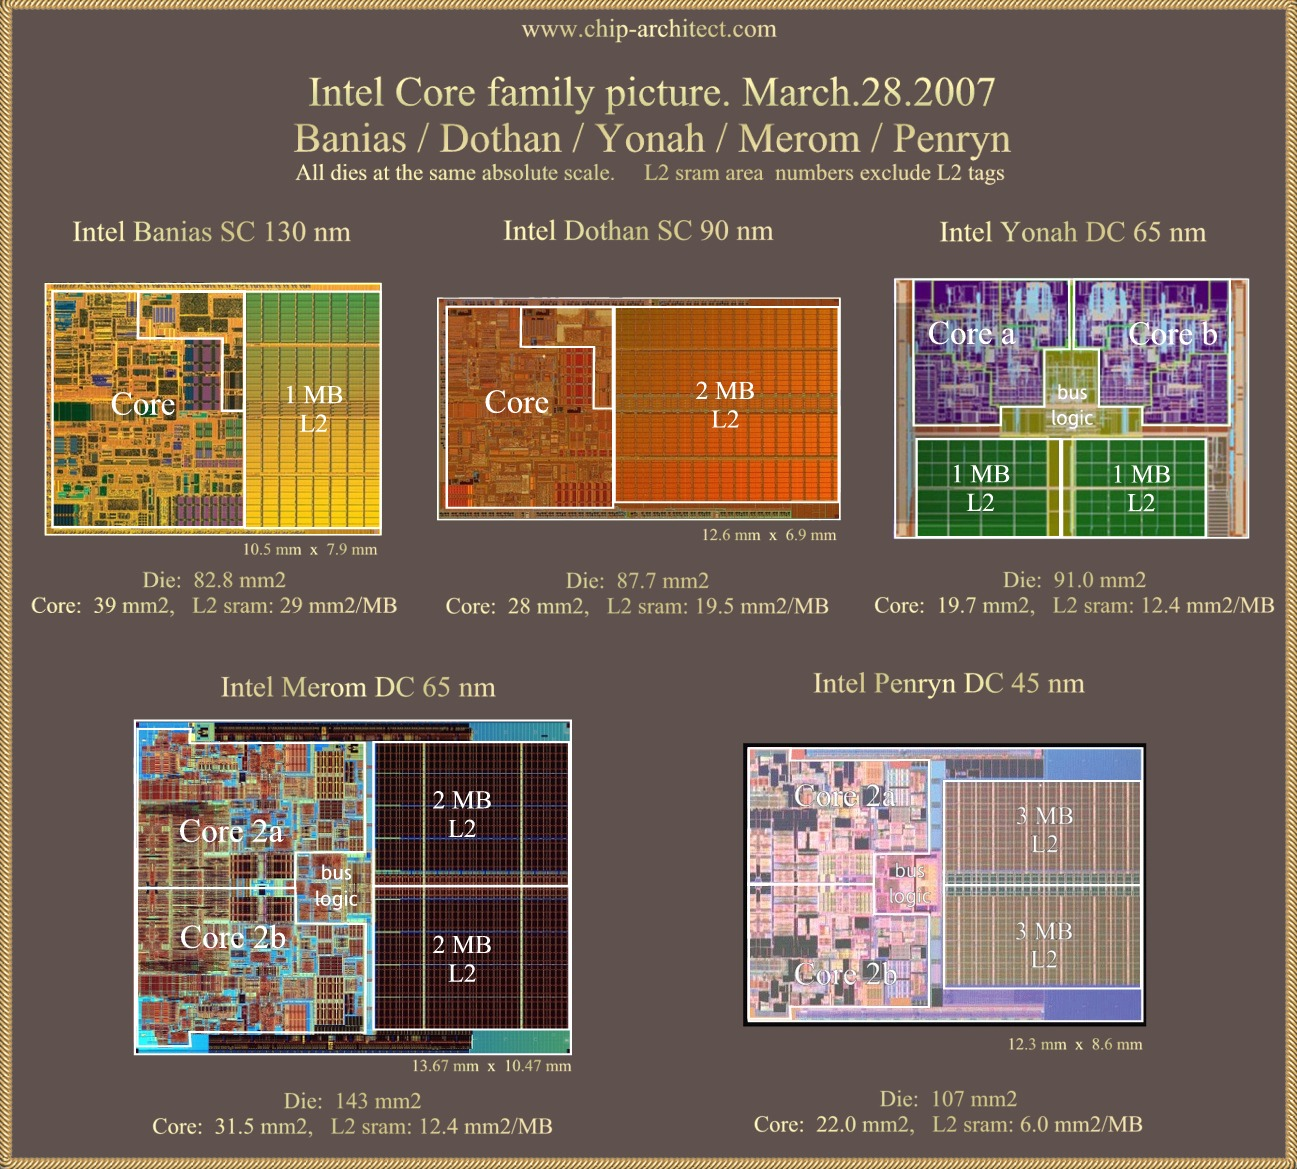 Chip Architect: Pretty Pictures And Numbers